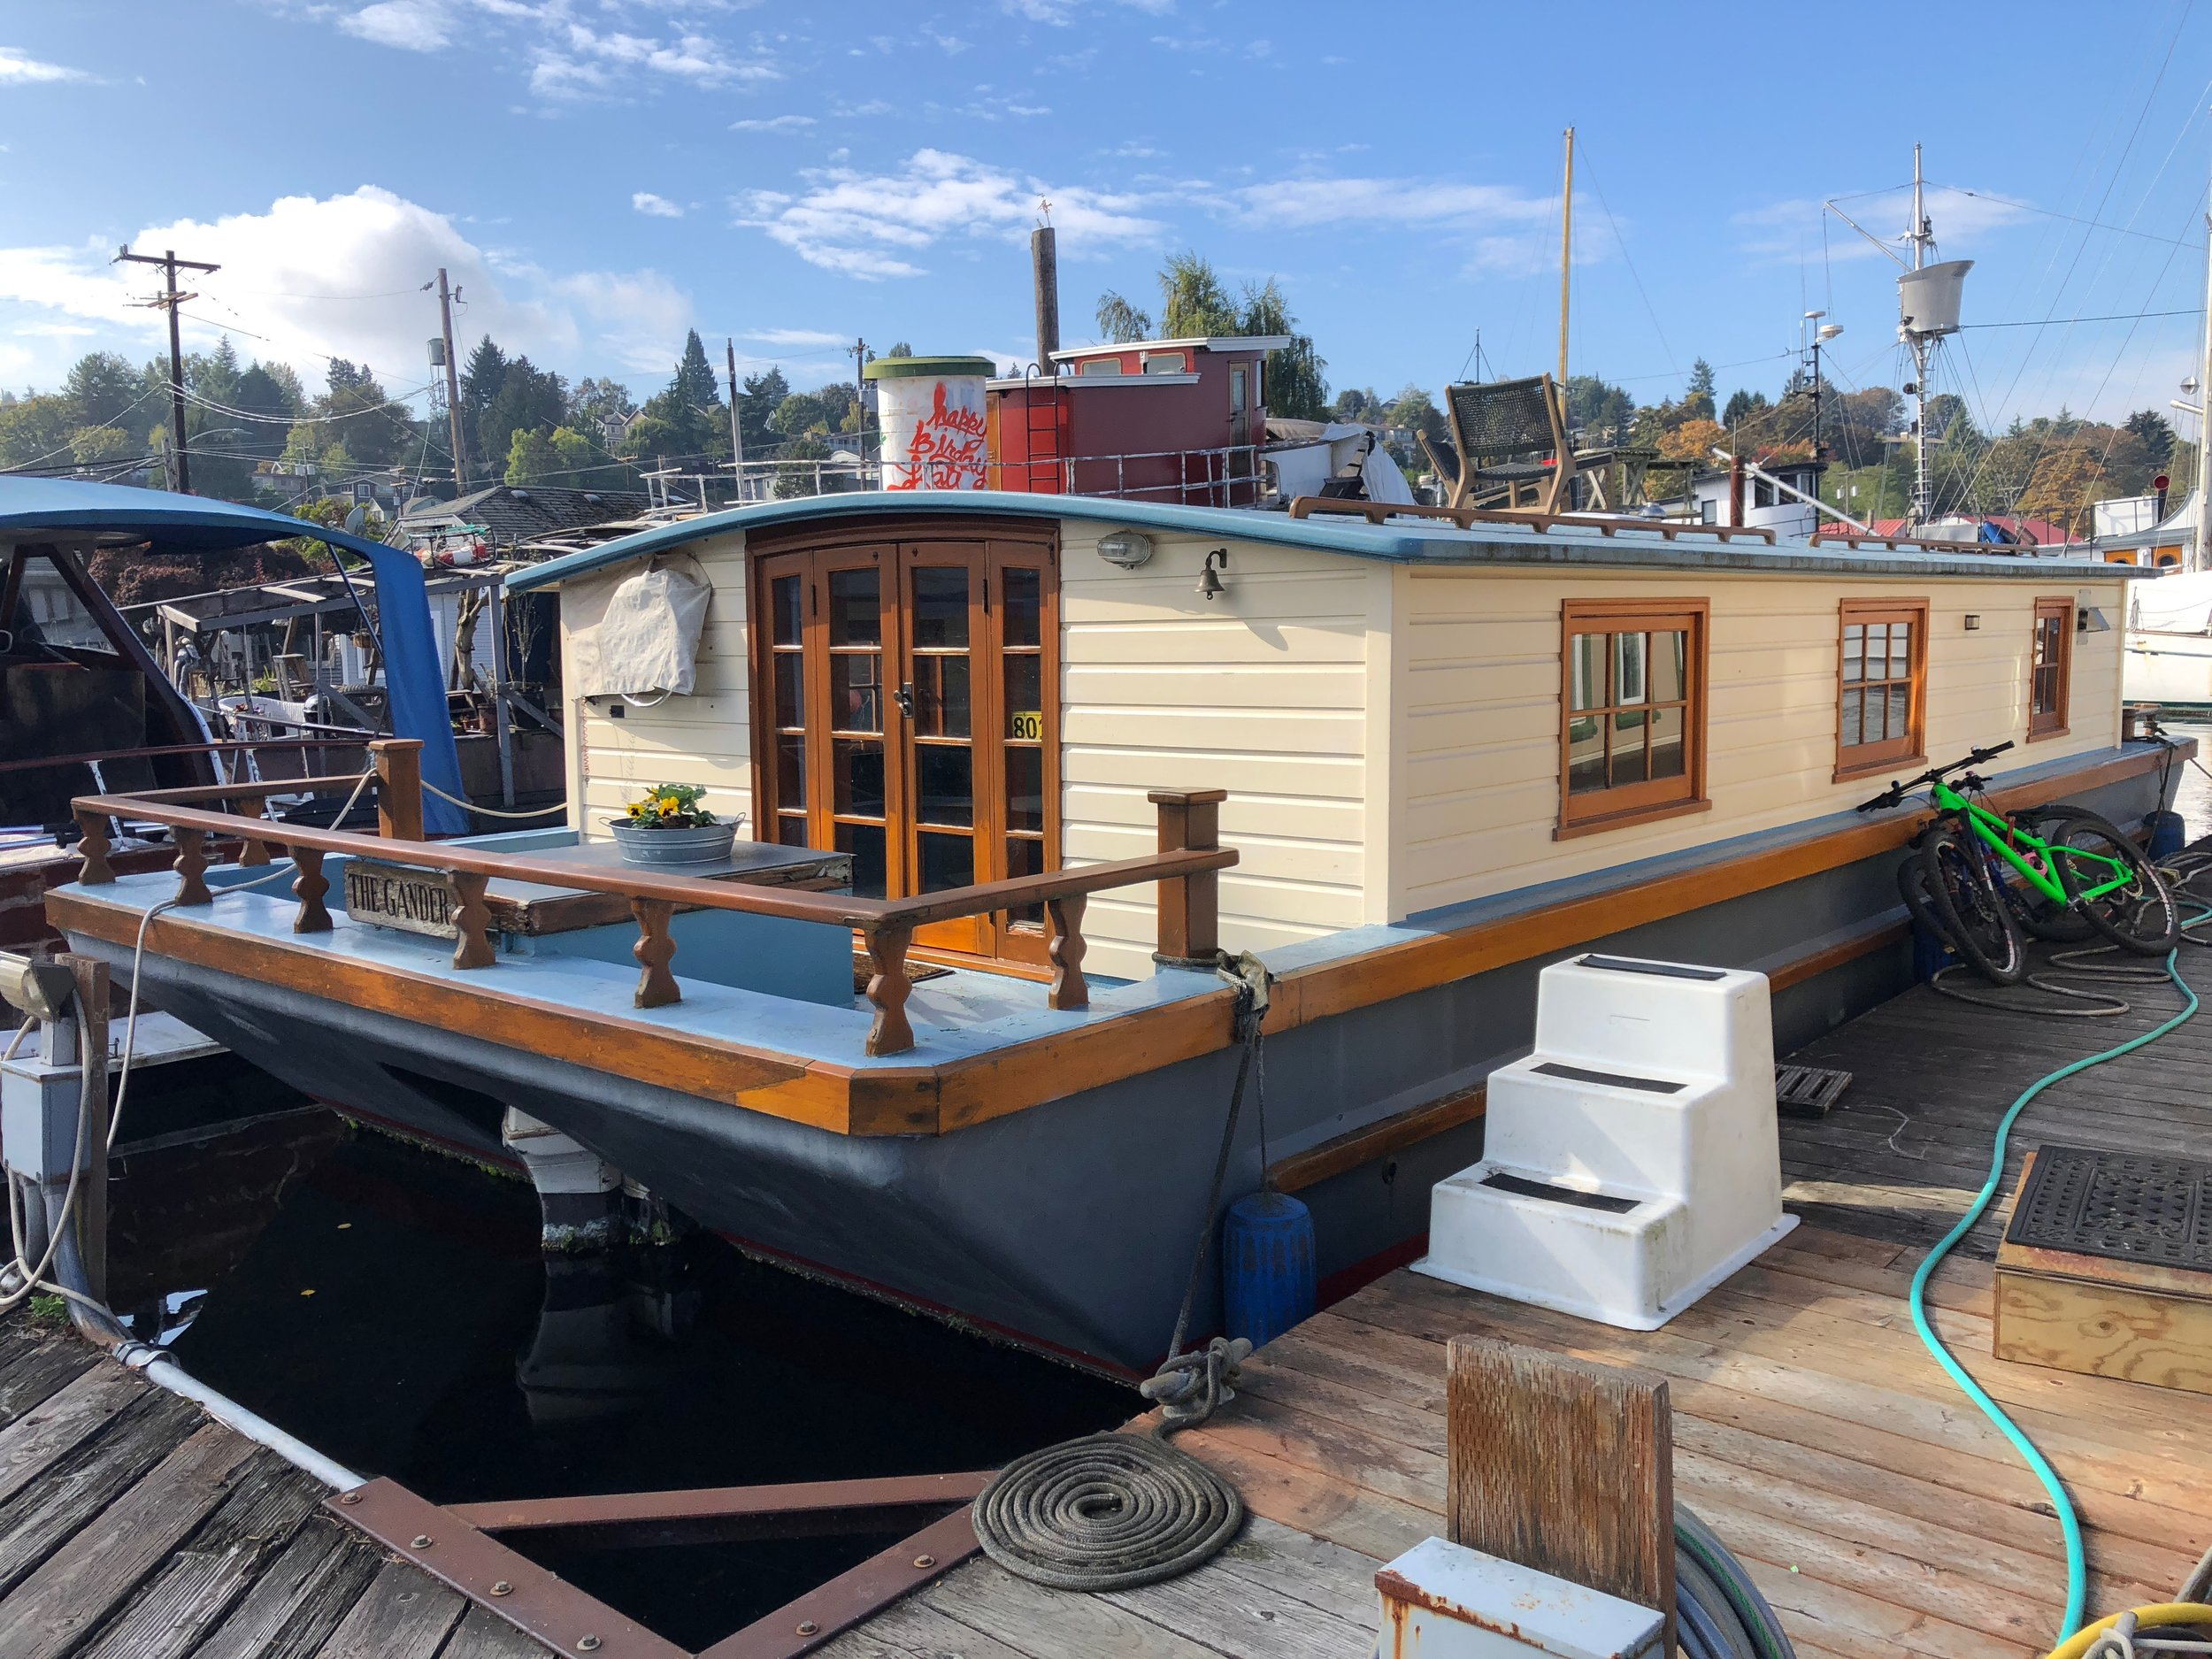 Jeremy and Crissy's houseboat, The Gander